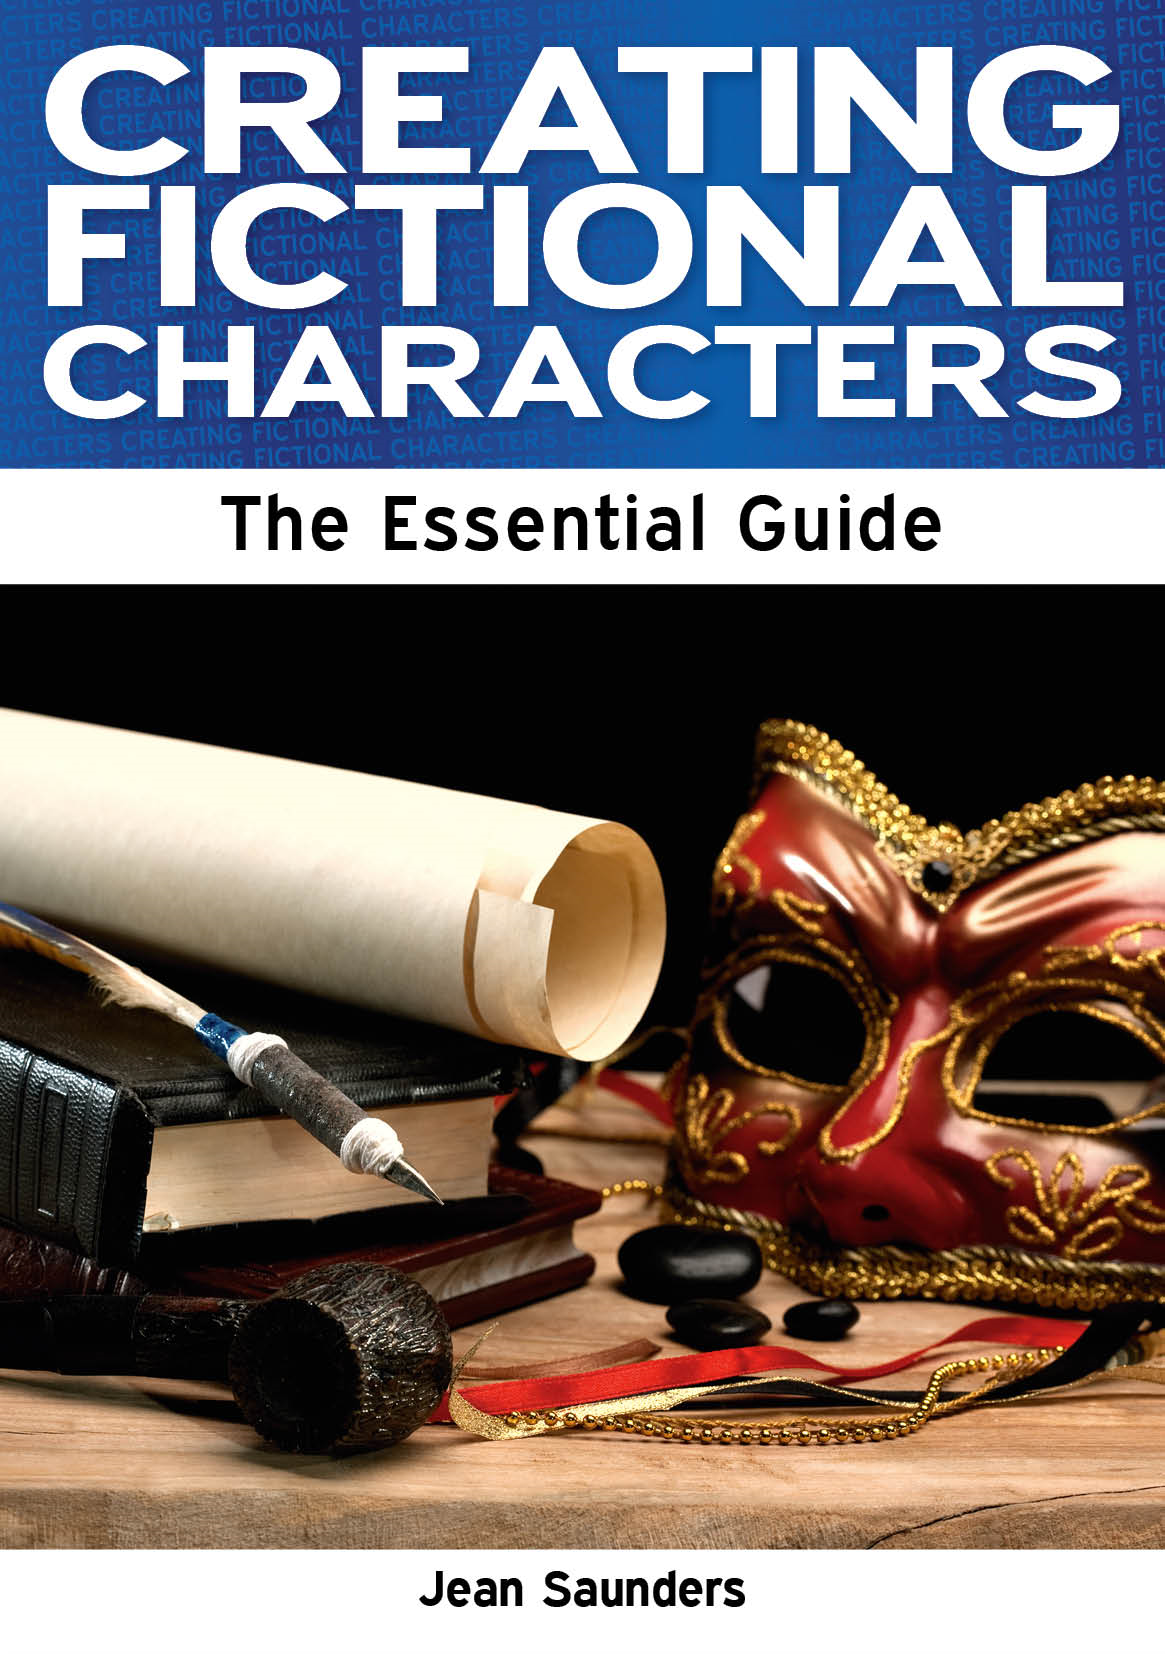 Creating Fictional Characters: The Essential Guide